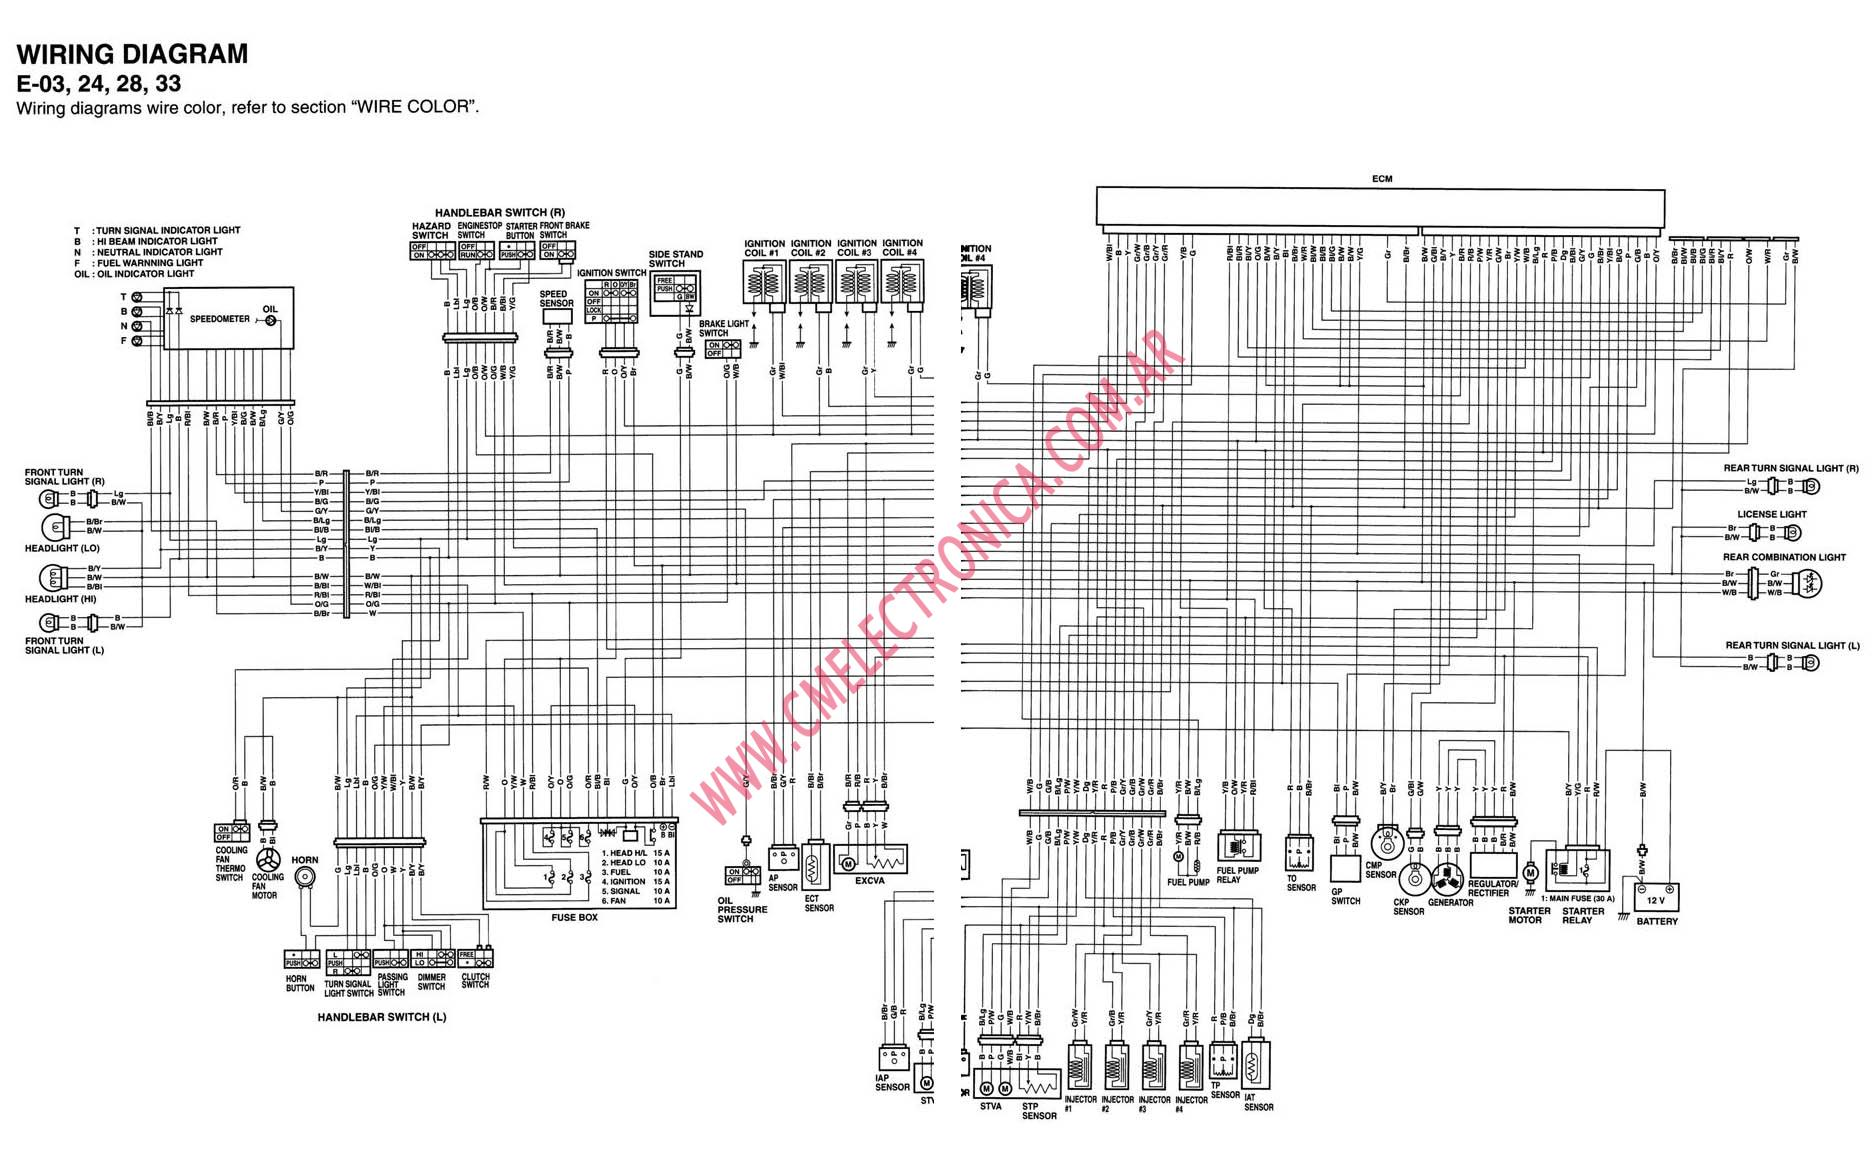 hight resolution of yamaha fzr 600 wiring diagram 98 yamaha fzr 600 wiring diagram fzr 600 wiring diagram